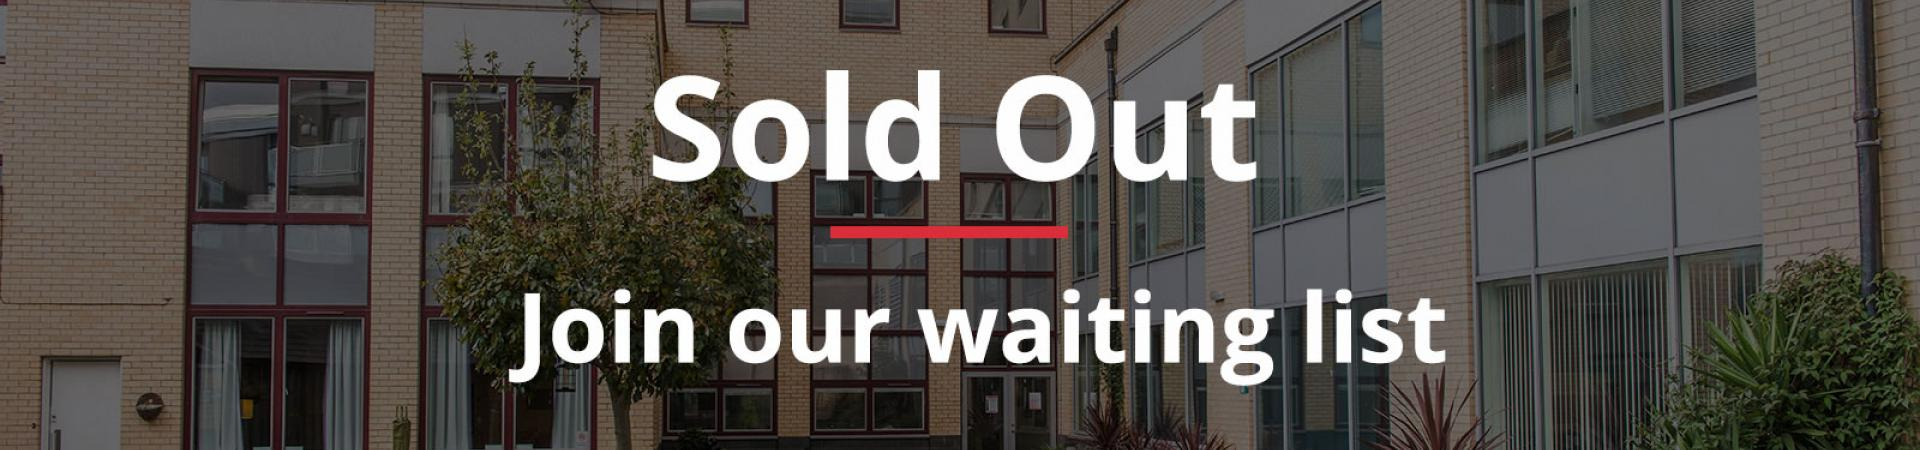 Manna Ash House Sold Out - join our waiting list